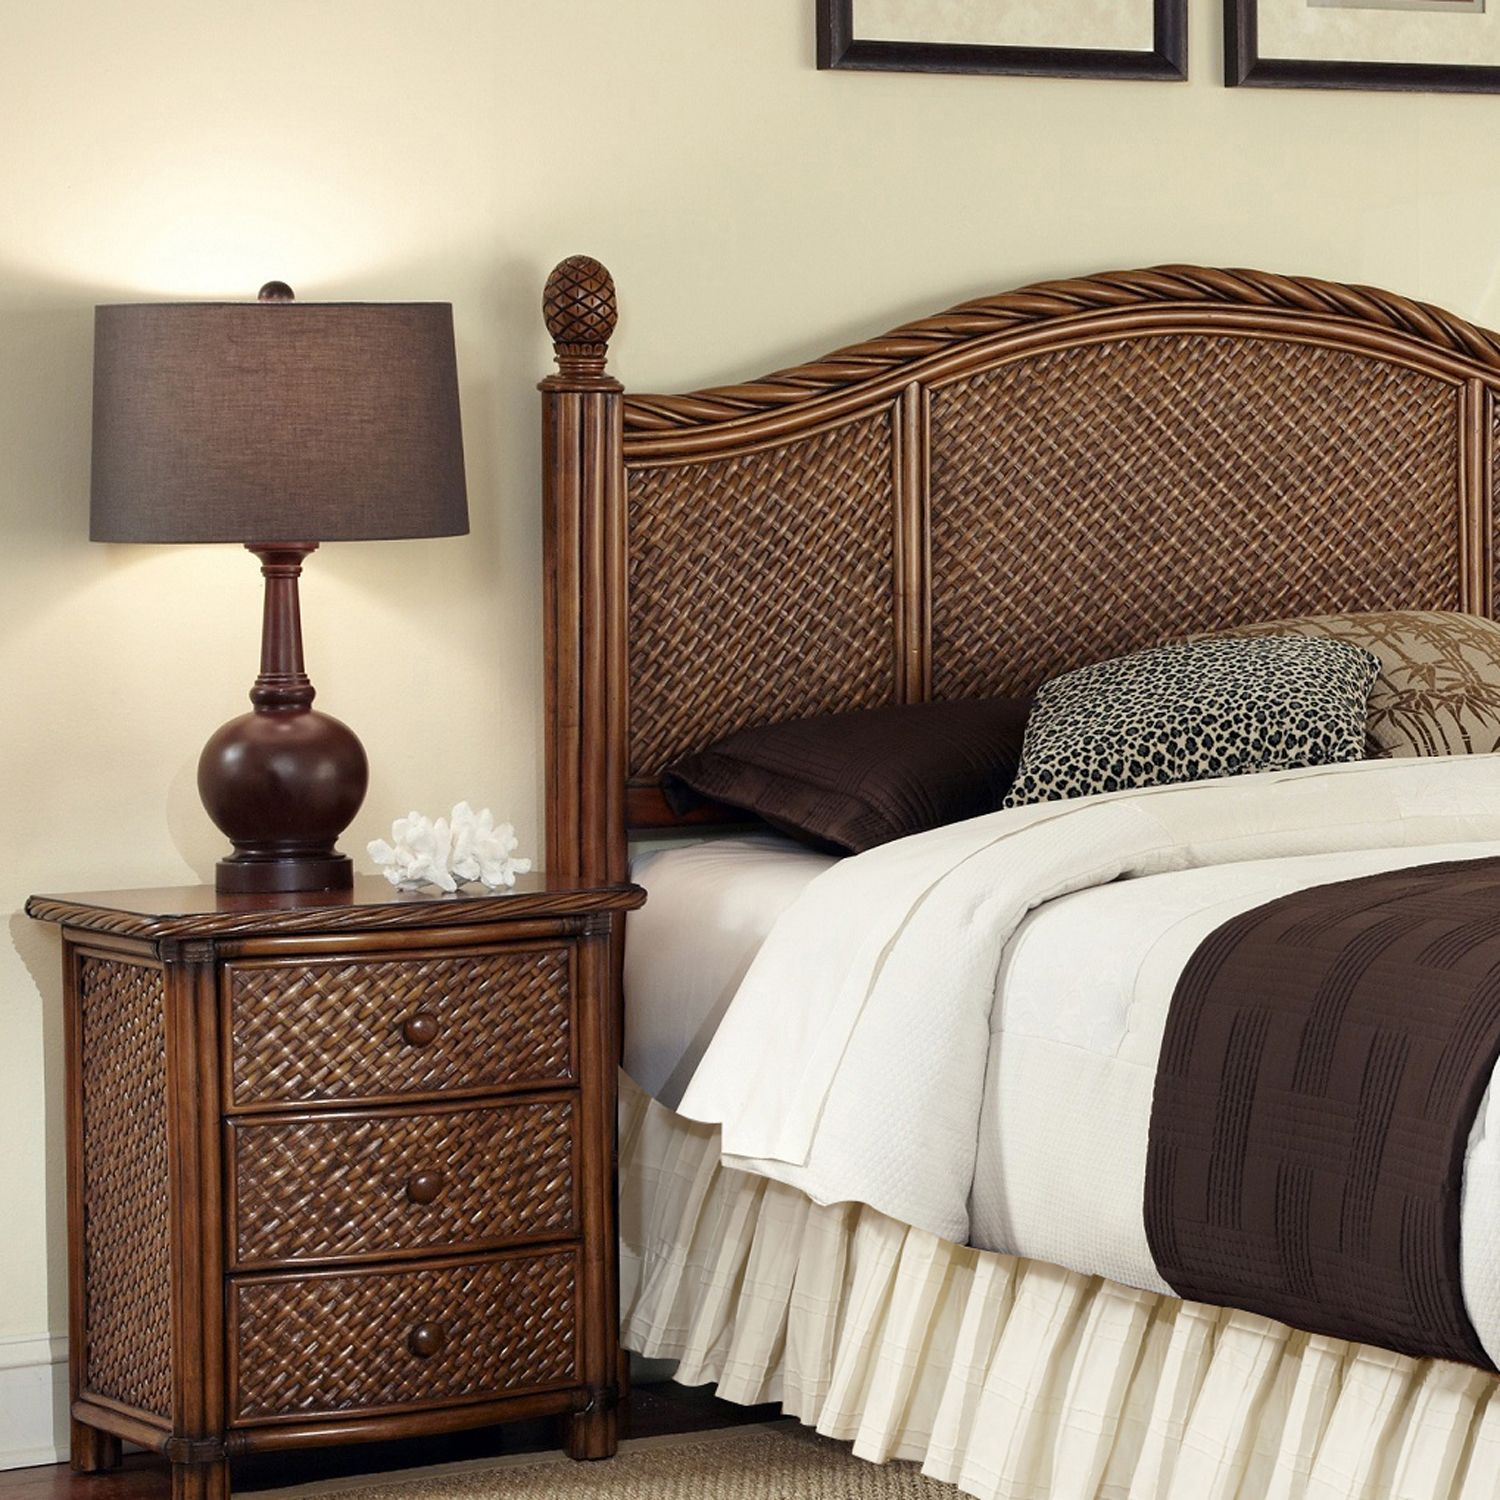 Superb Marco Island pc King Headboard u Nightstand Set